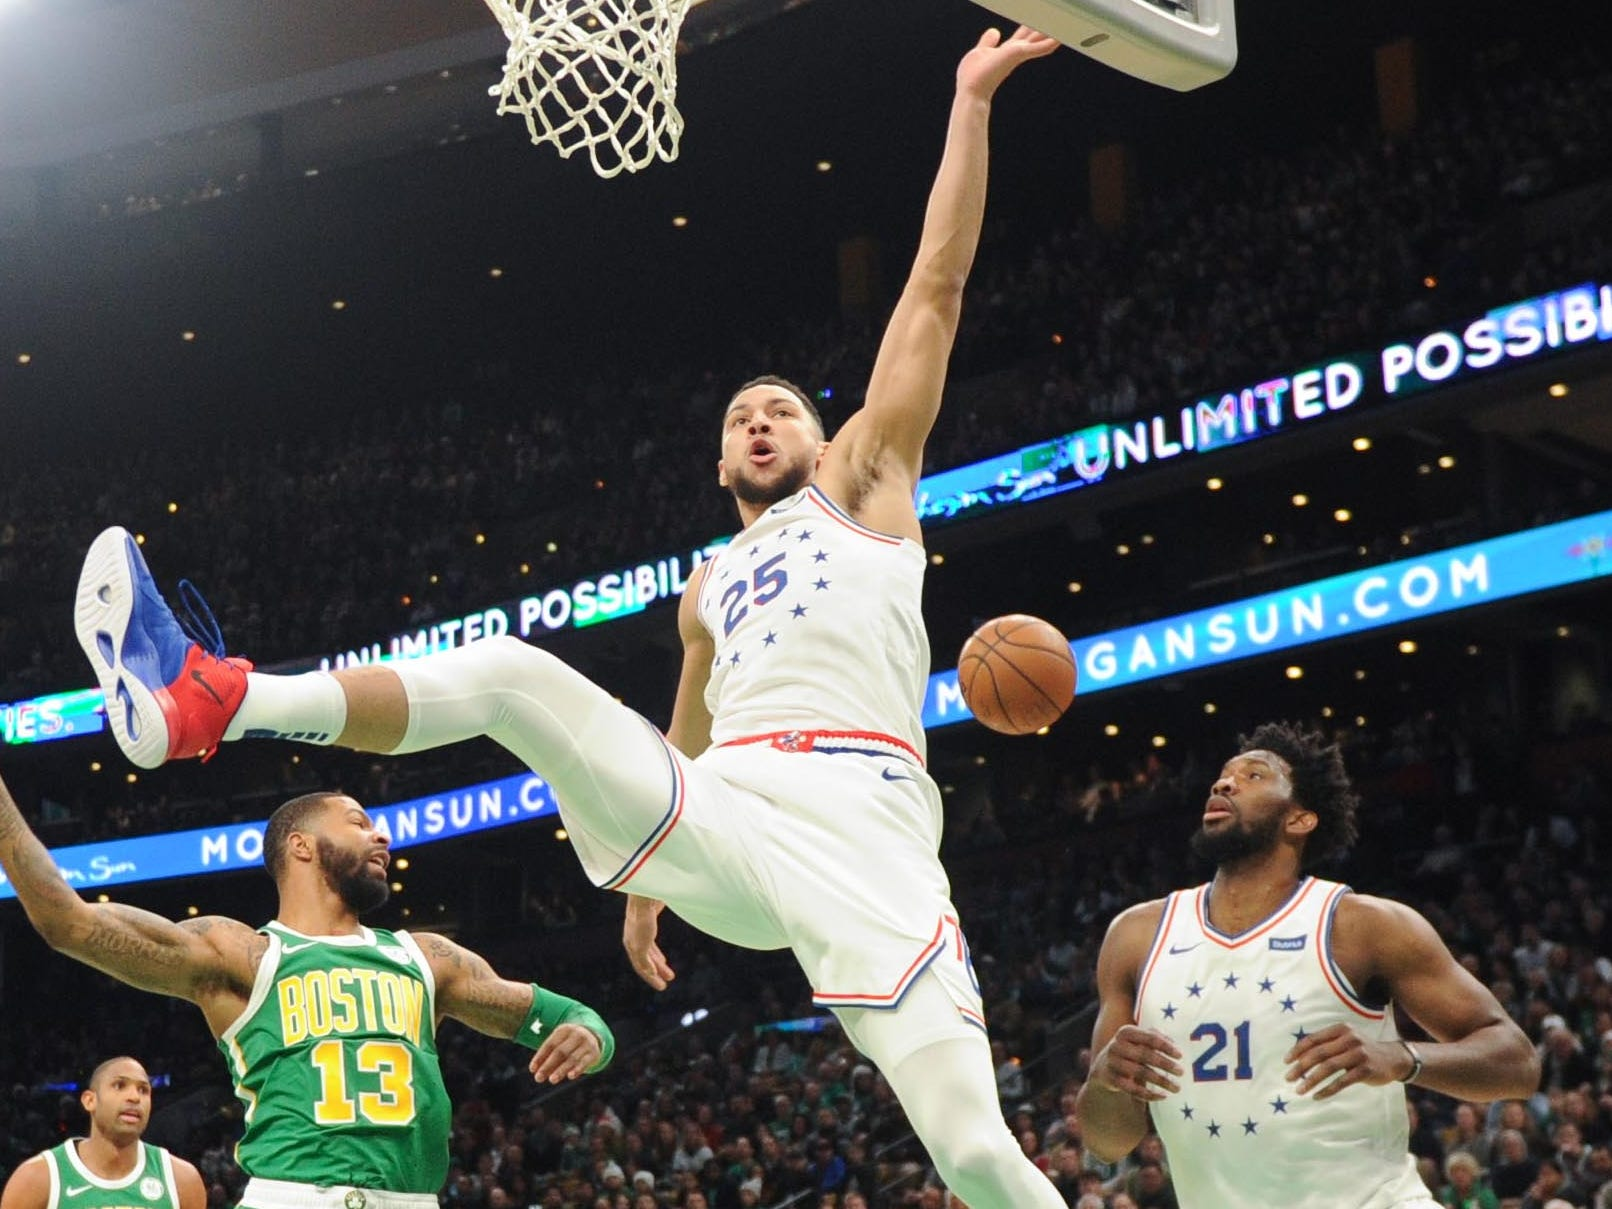 Dec. 25: Sixers guard Ben Simmons (25) loses control of the ball on a drive to the basket during the first half against the Celtics in Boston.